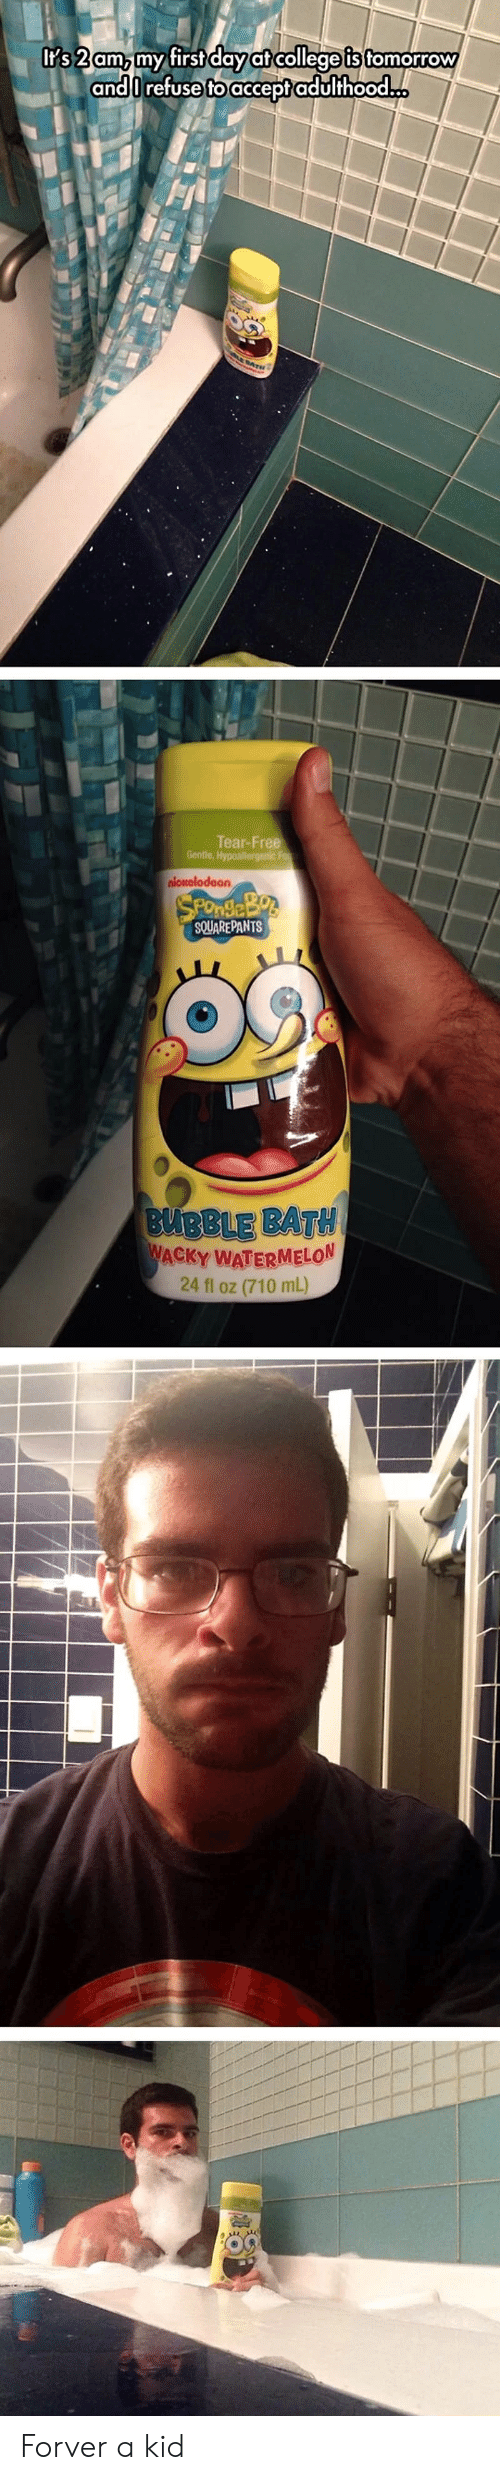 College, Free, and Tomorrow: It's 2 am, my first day at college is tomorrow  andOrefuse to acceptadulthood..  BATH  Tear-Free  Gentle, Hypoallergenic Fo  nleκolodeon,  SPOndleBos  SQUAREPANTS  BUBBLE BATH  WACKY WATERMELON  24 fl oz (710 mL) Forver a kid